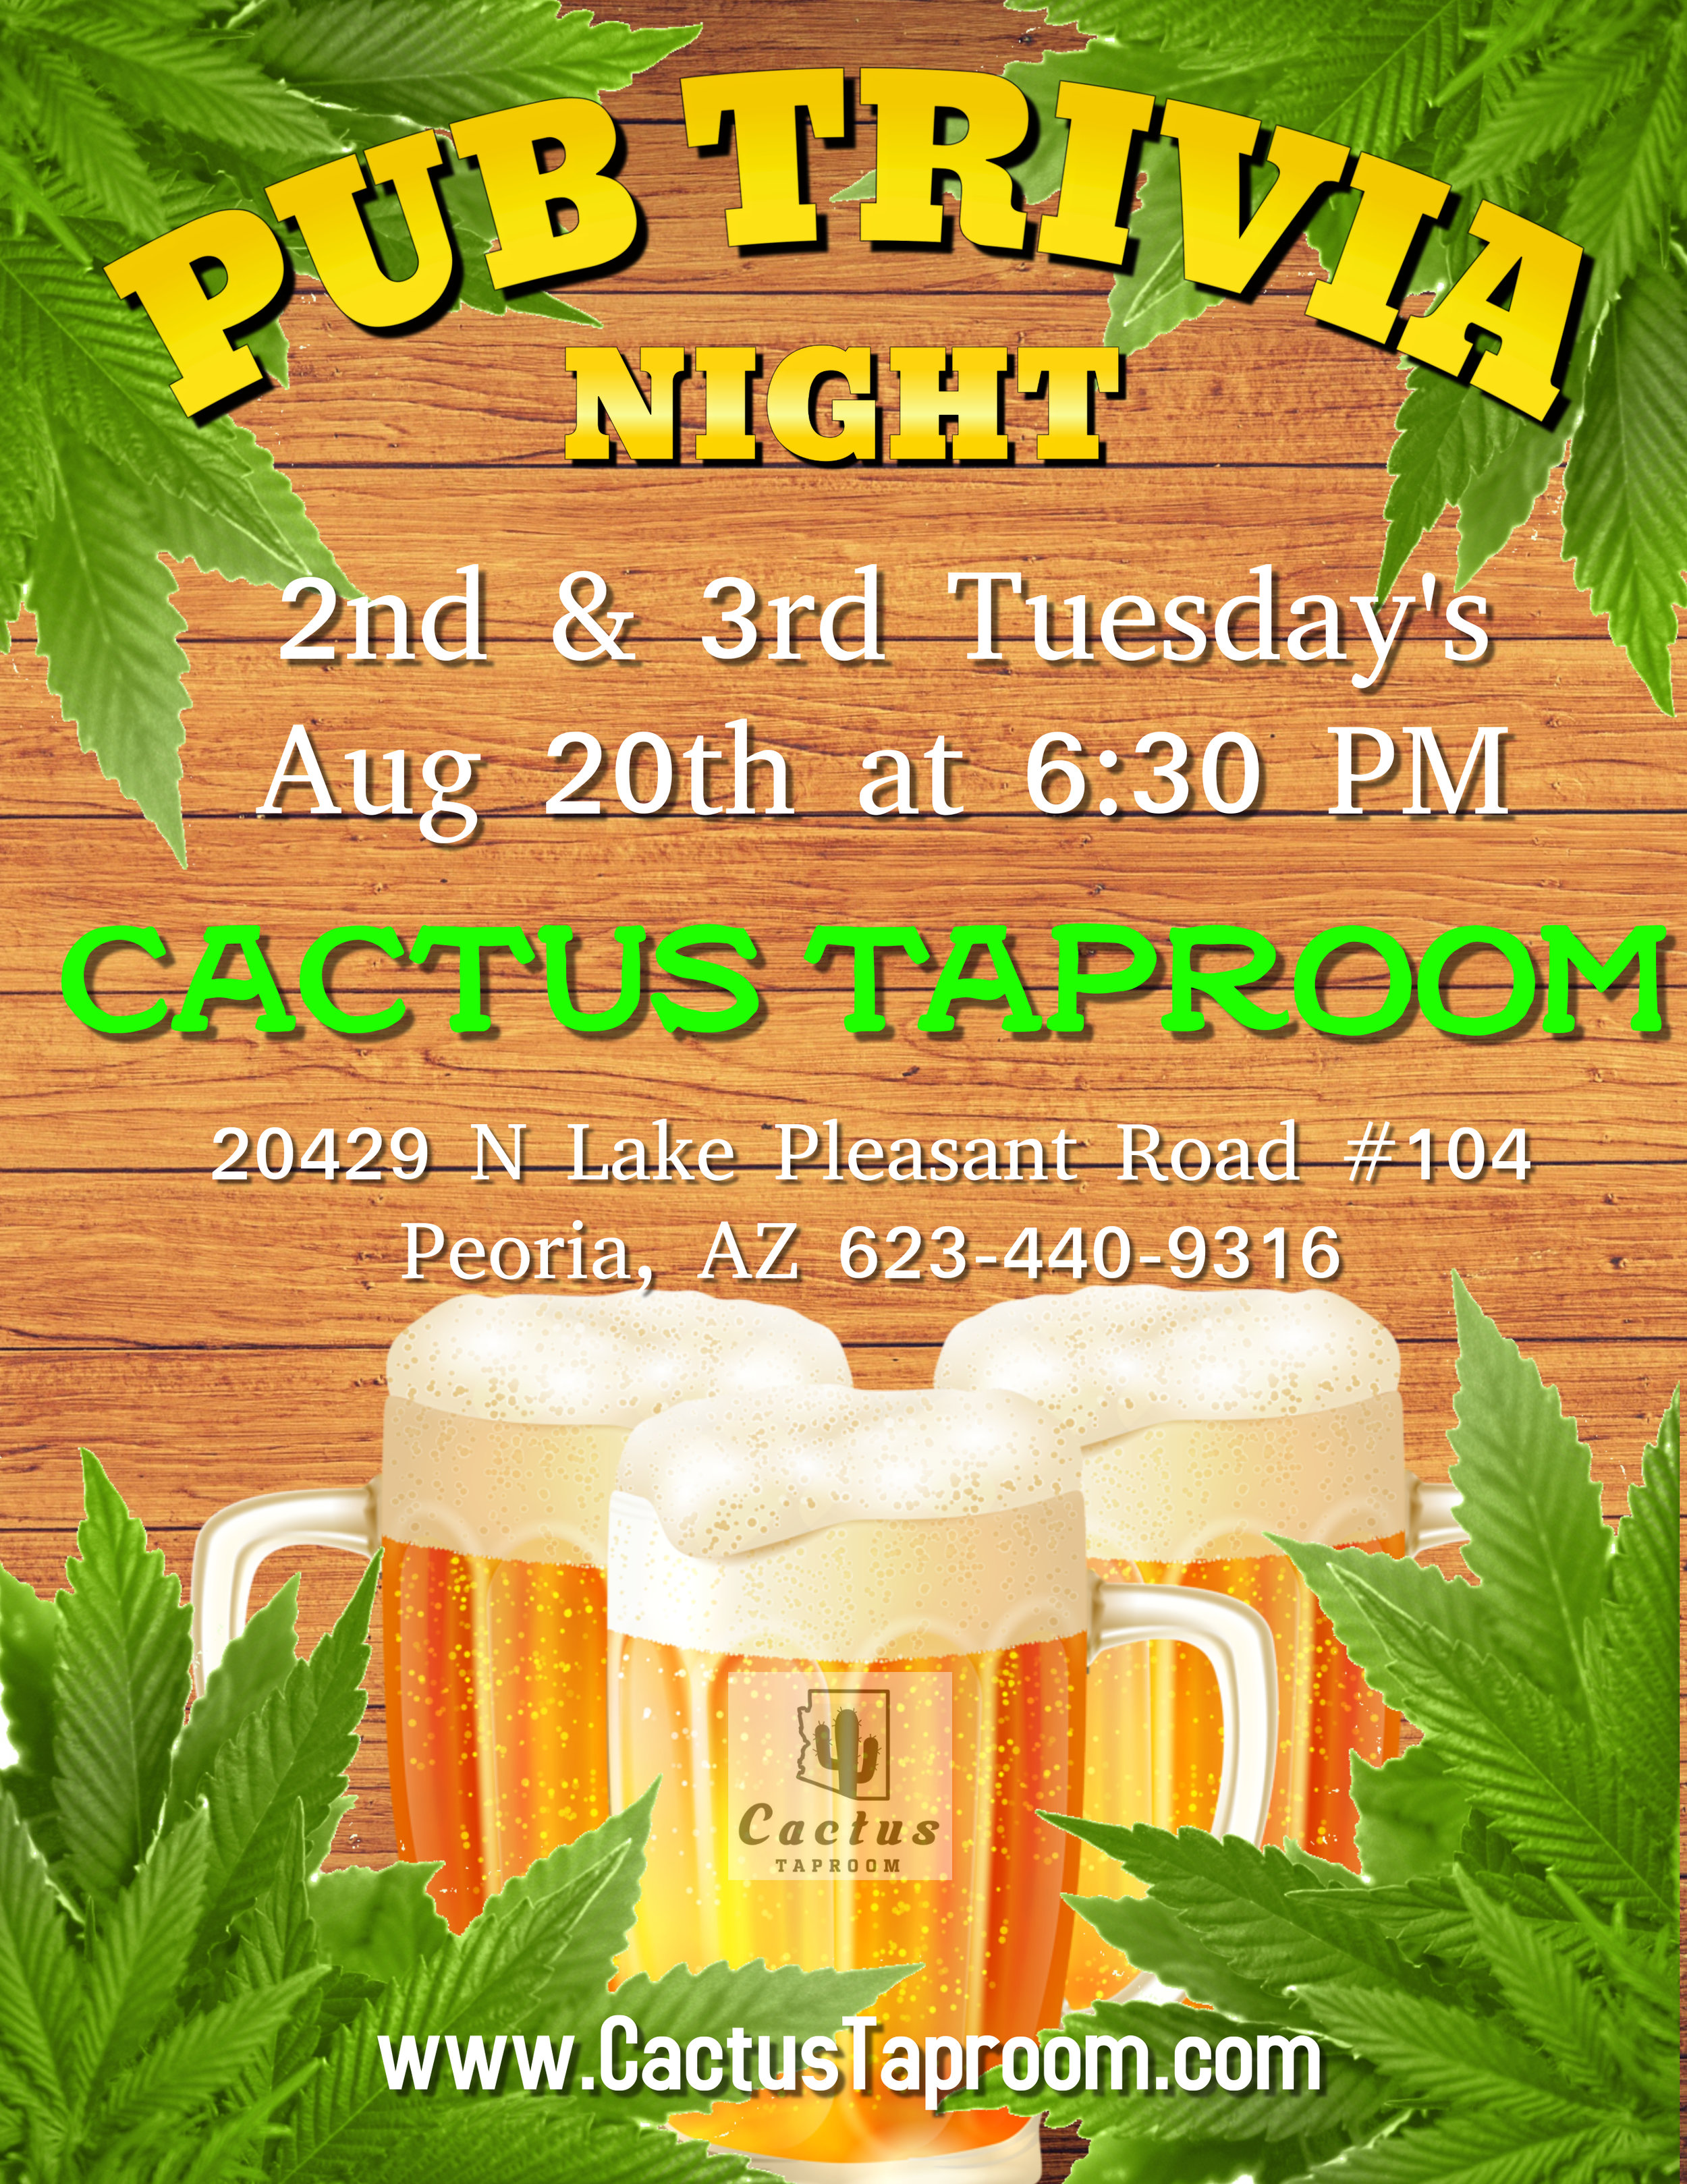 Join us the 2nd & 3rd Tuesday of the month! Great Beer - Prizes